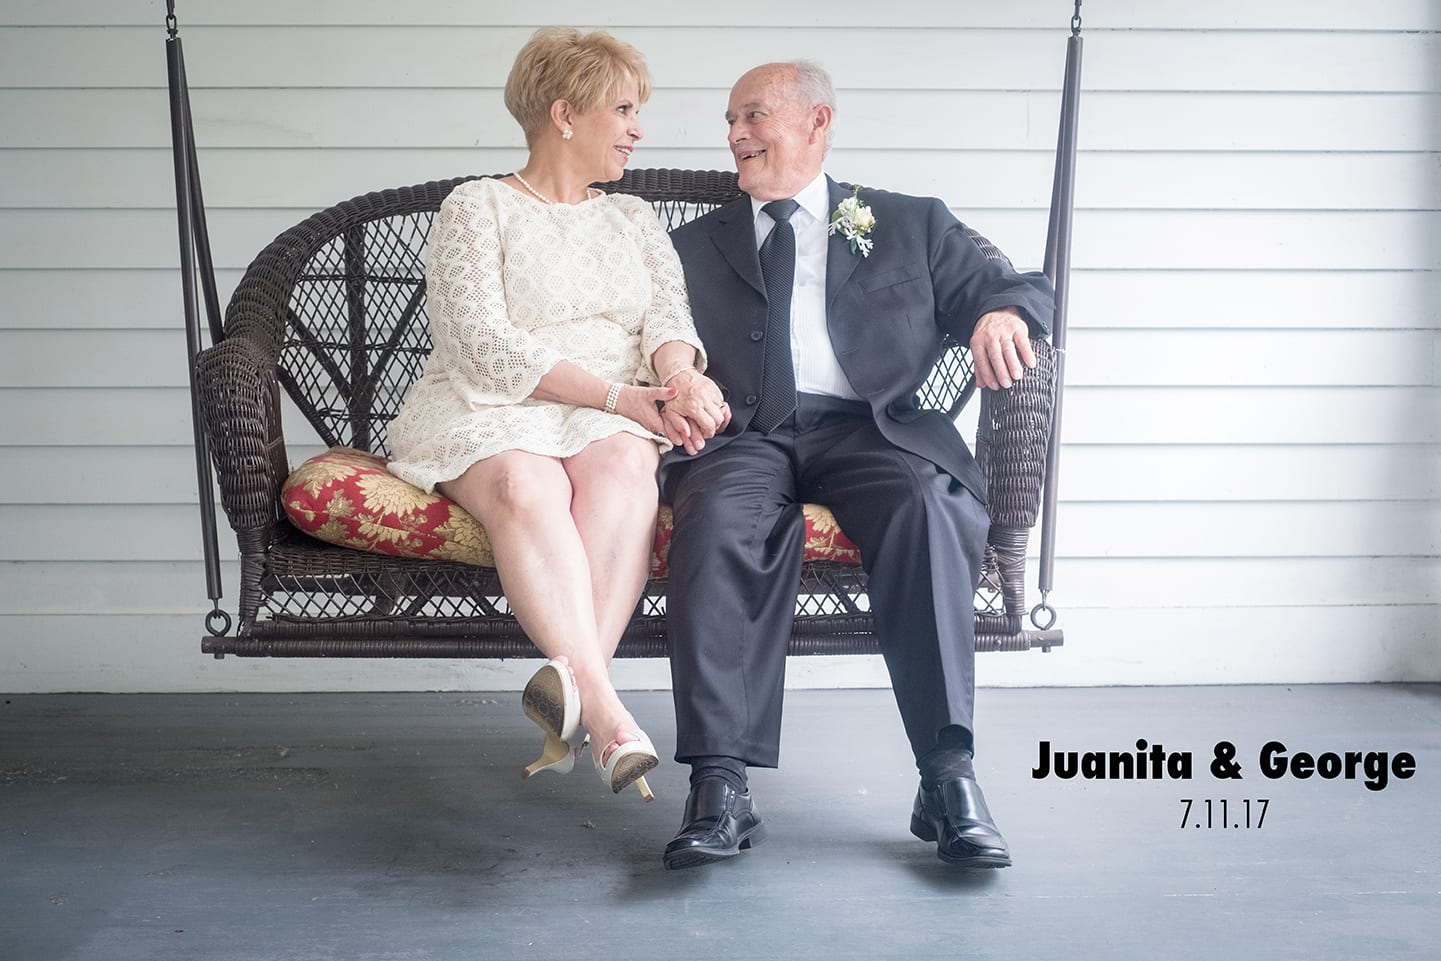 Juanita and George wedding photography.